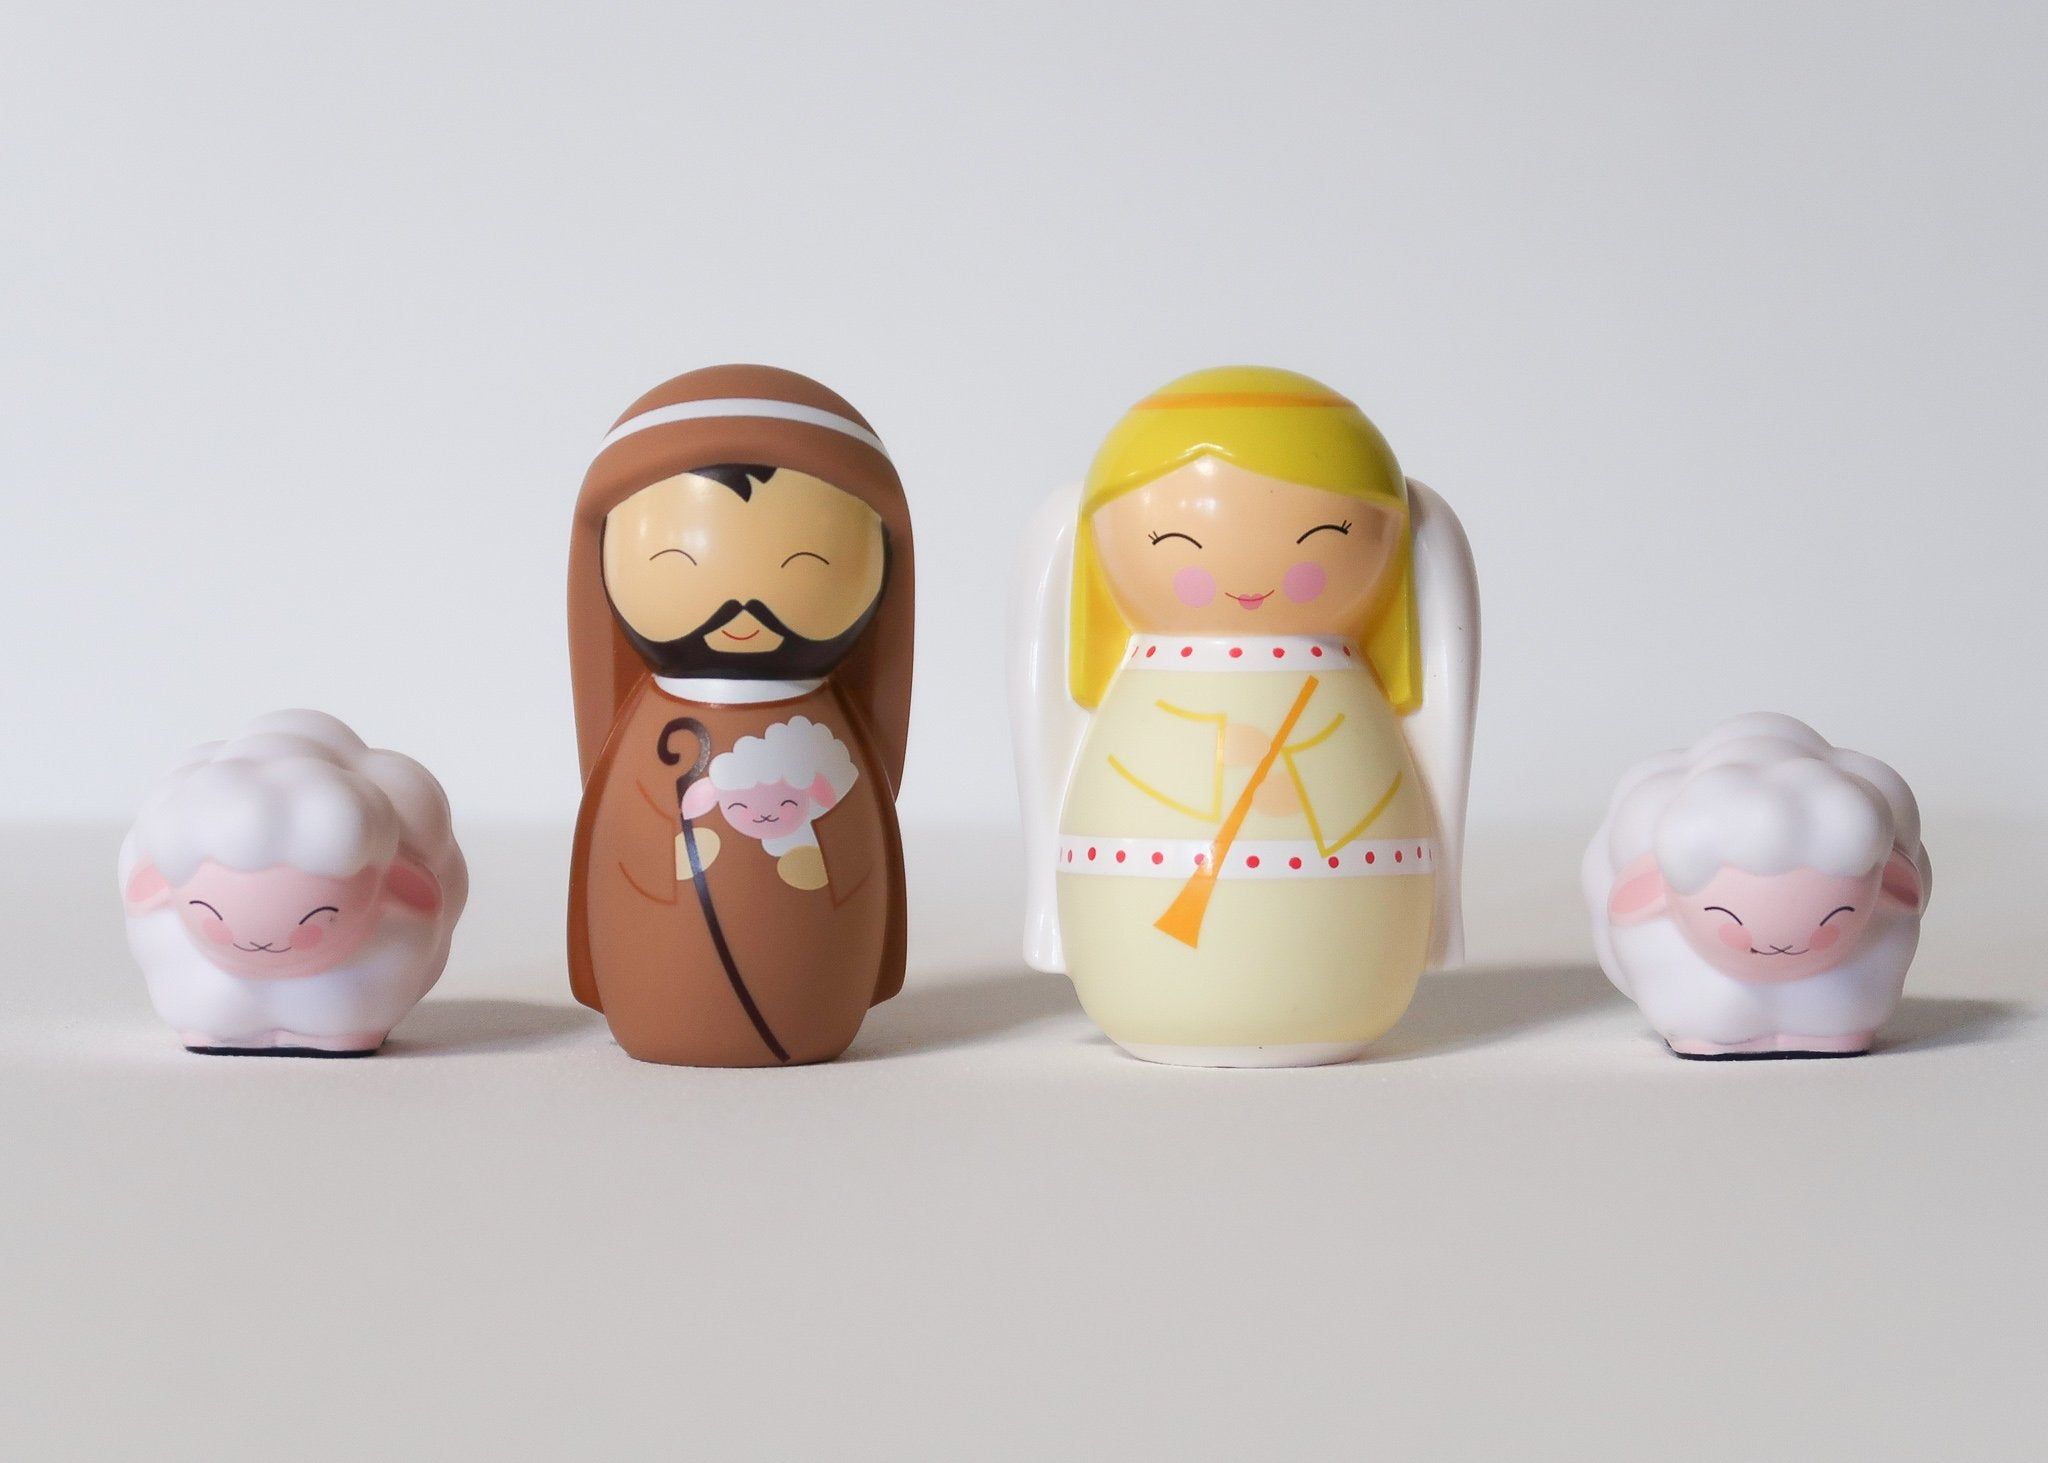 The Shepherd and Angel Nativity Playset